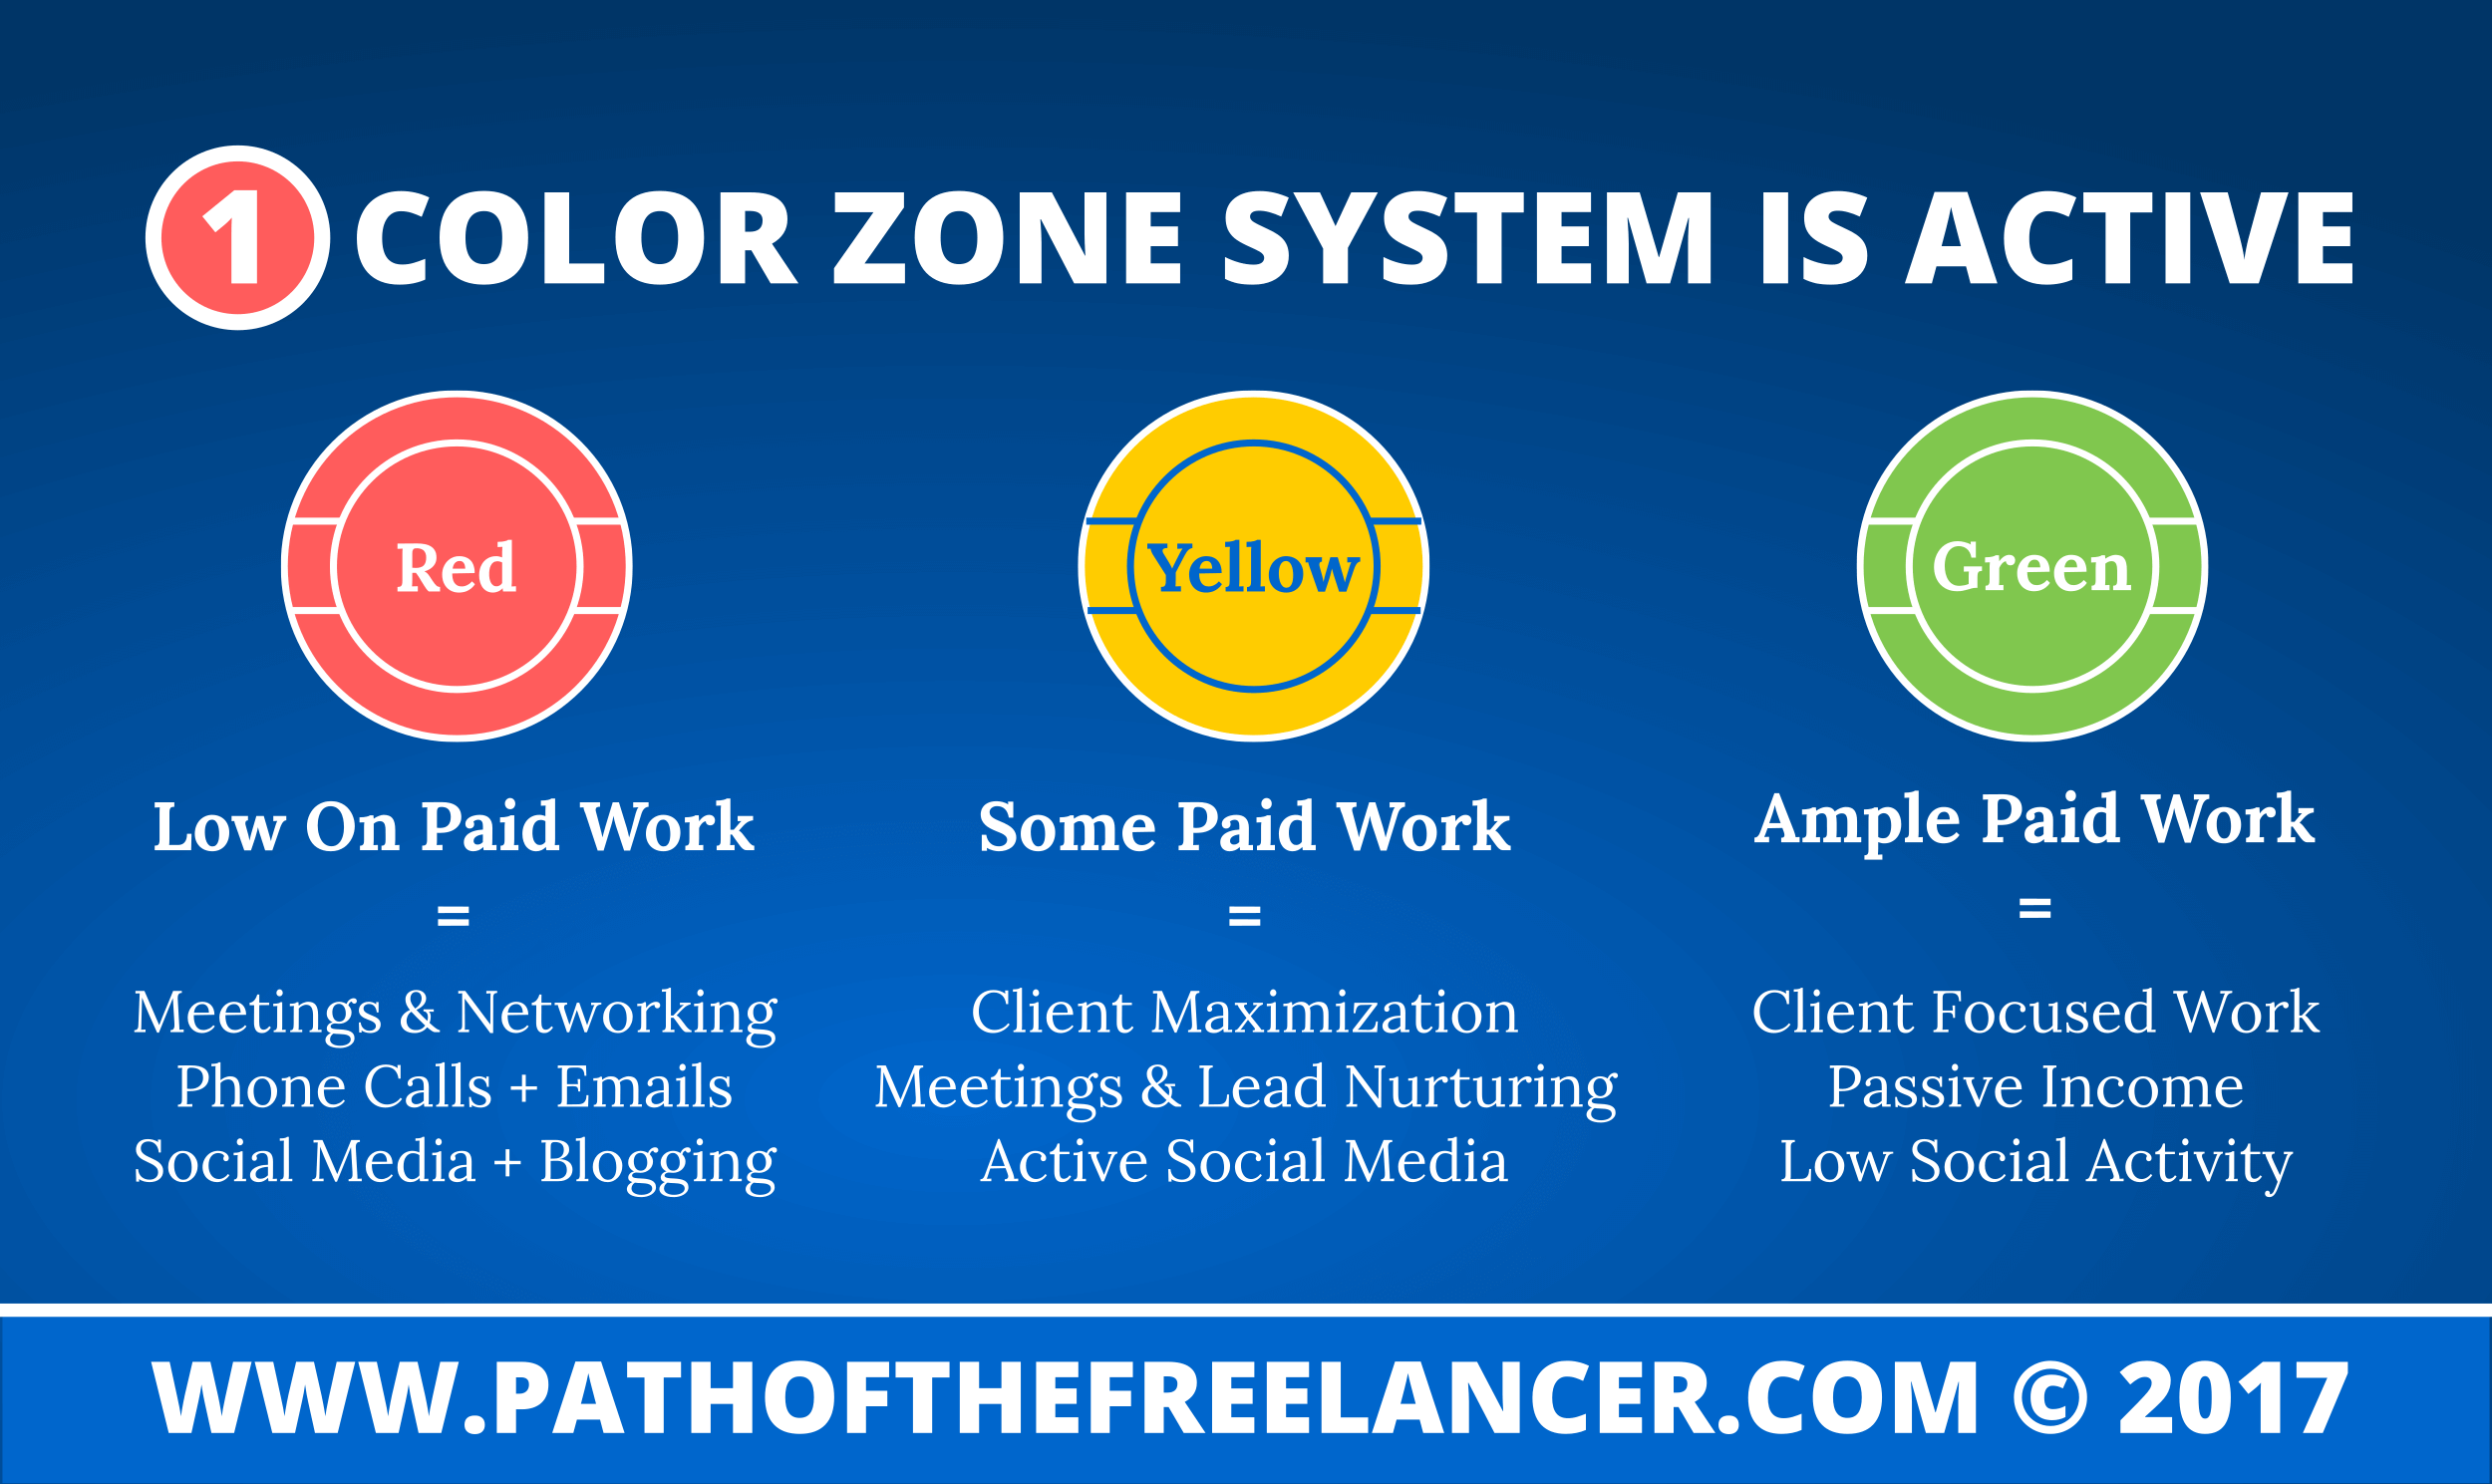 Color Zone System (CZS) Is Active